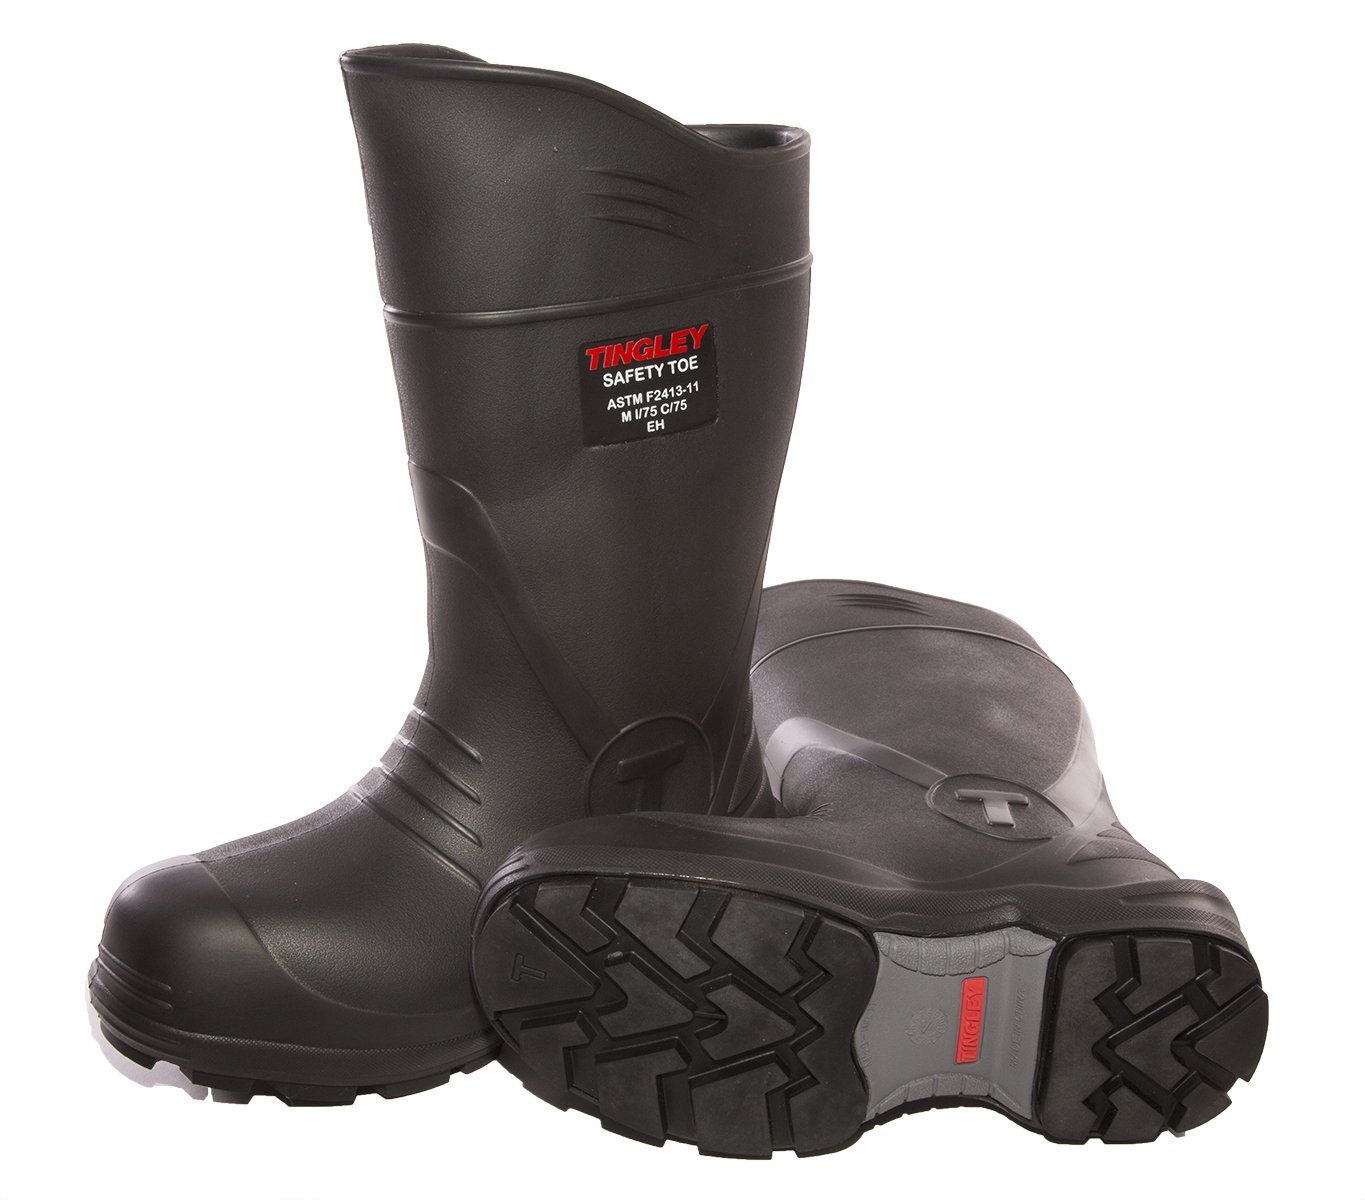 TINGLEY 27251.13 27251 SZ13 Footwear: Boots-Rubber Safety Toe, 13 Black